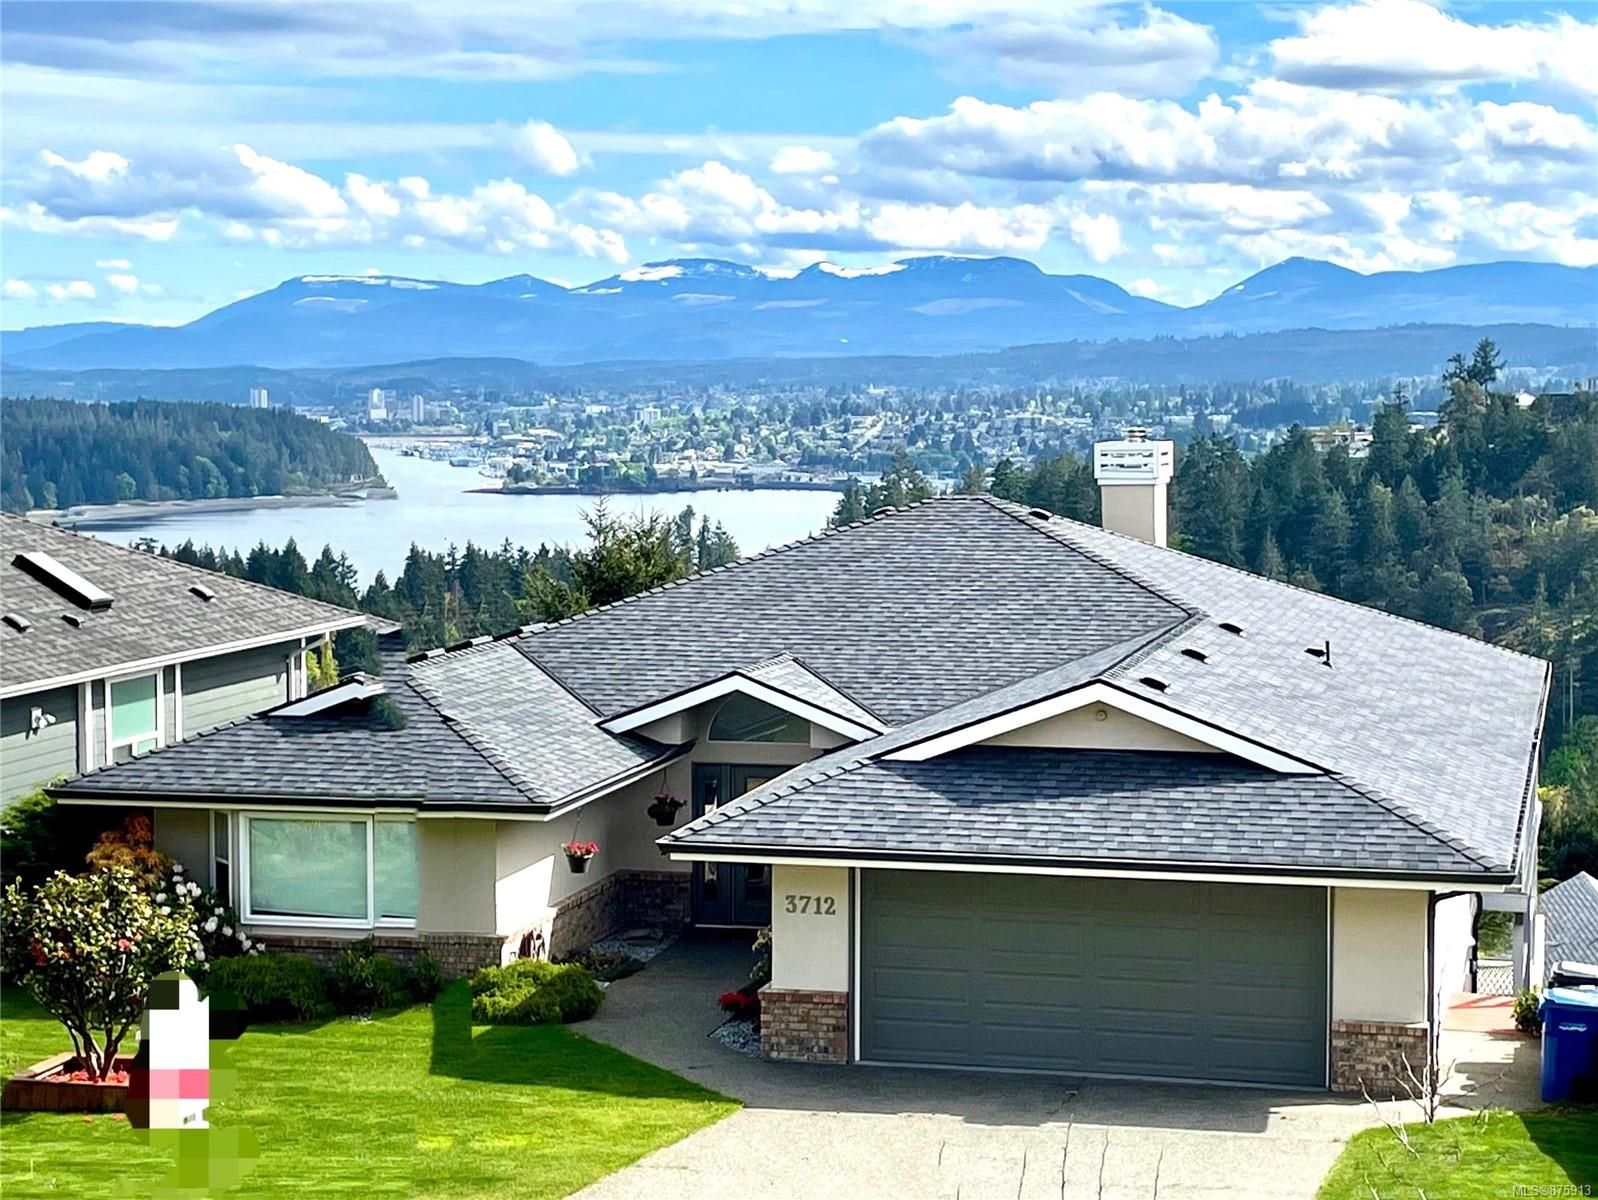 Main Photo: 3712 Belaire Dr in : Na Hammond Bay House for sale (Nanaimo)  : MLS®# 875913